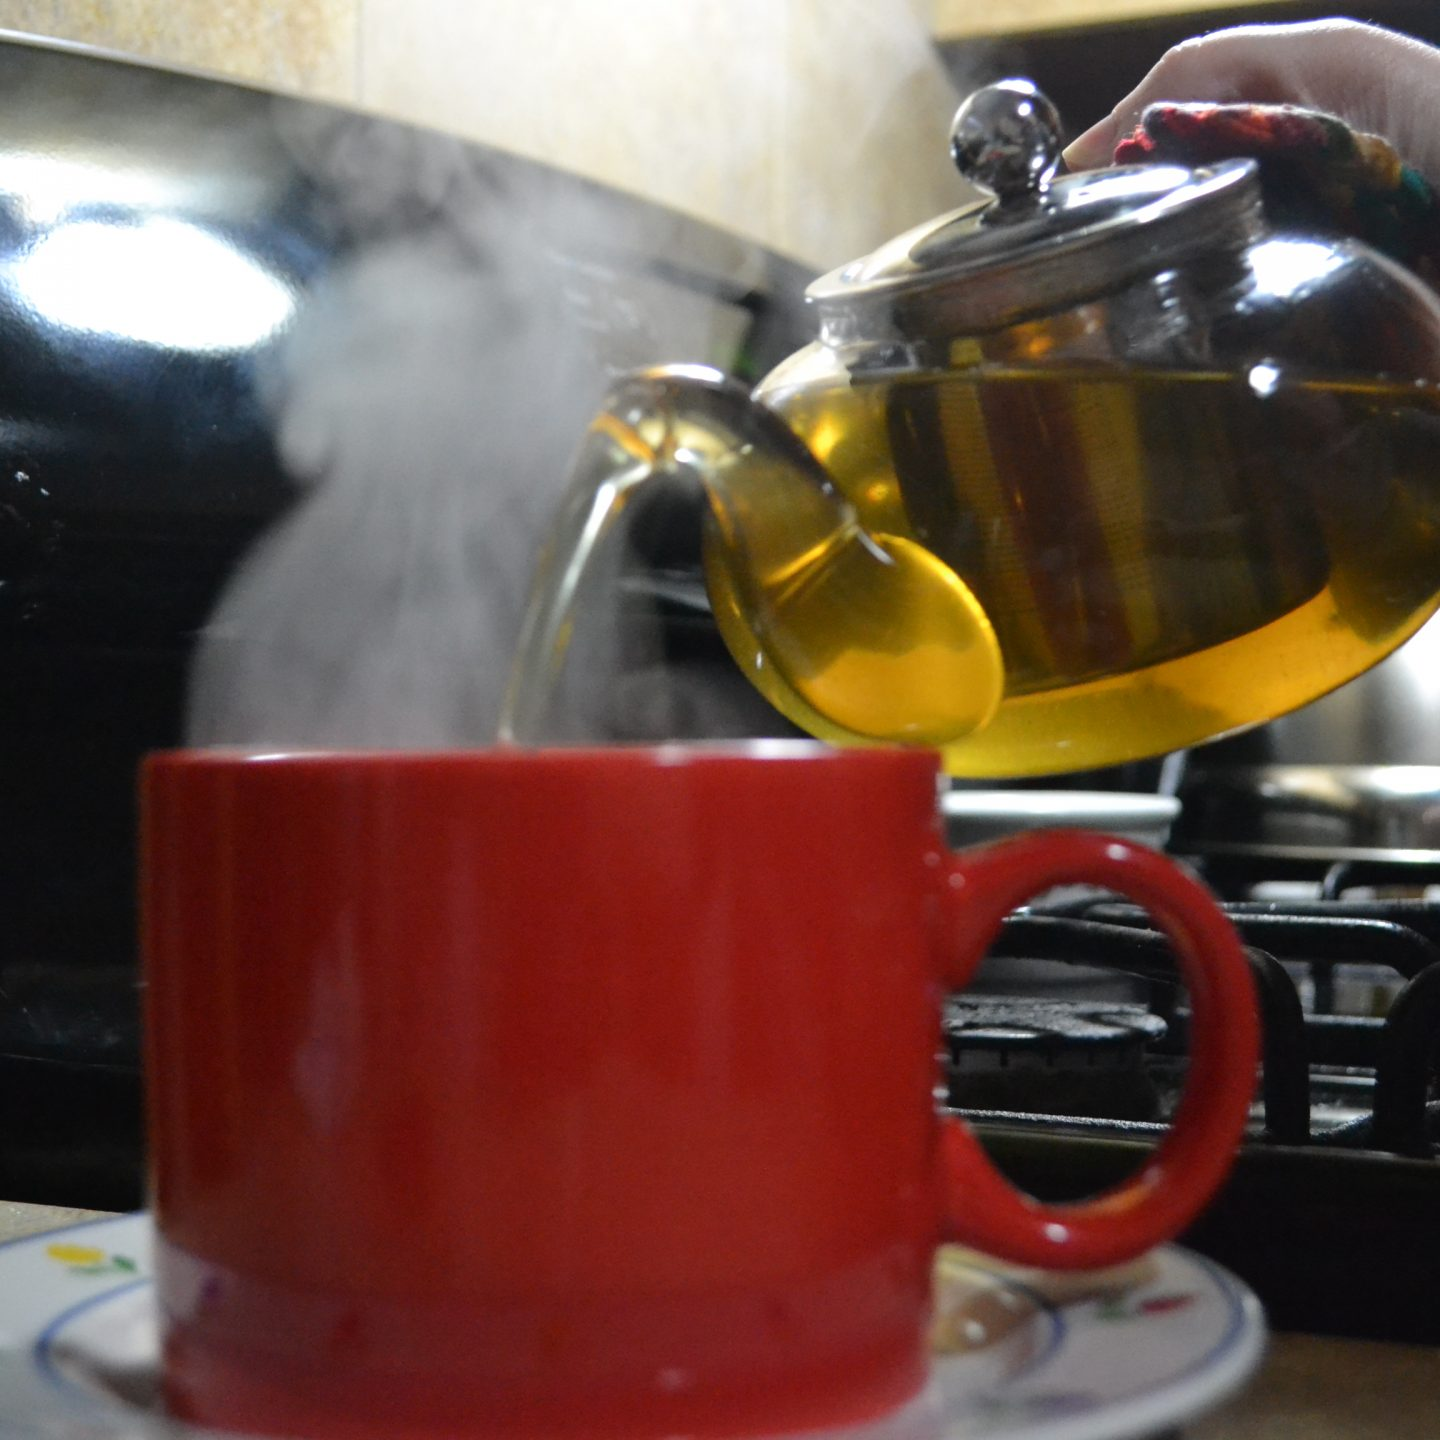 My Favorite Christmas Present: The Hiware Glass Teapot